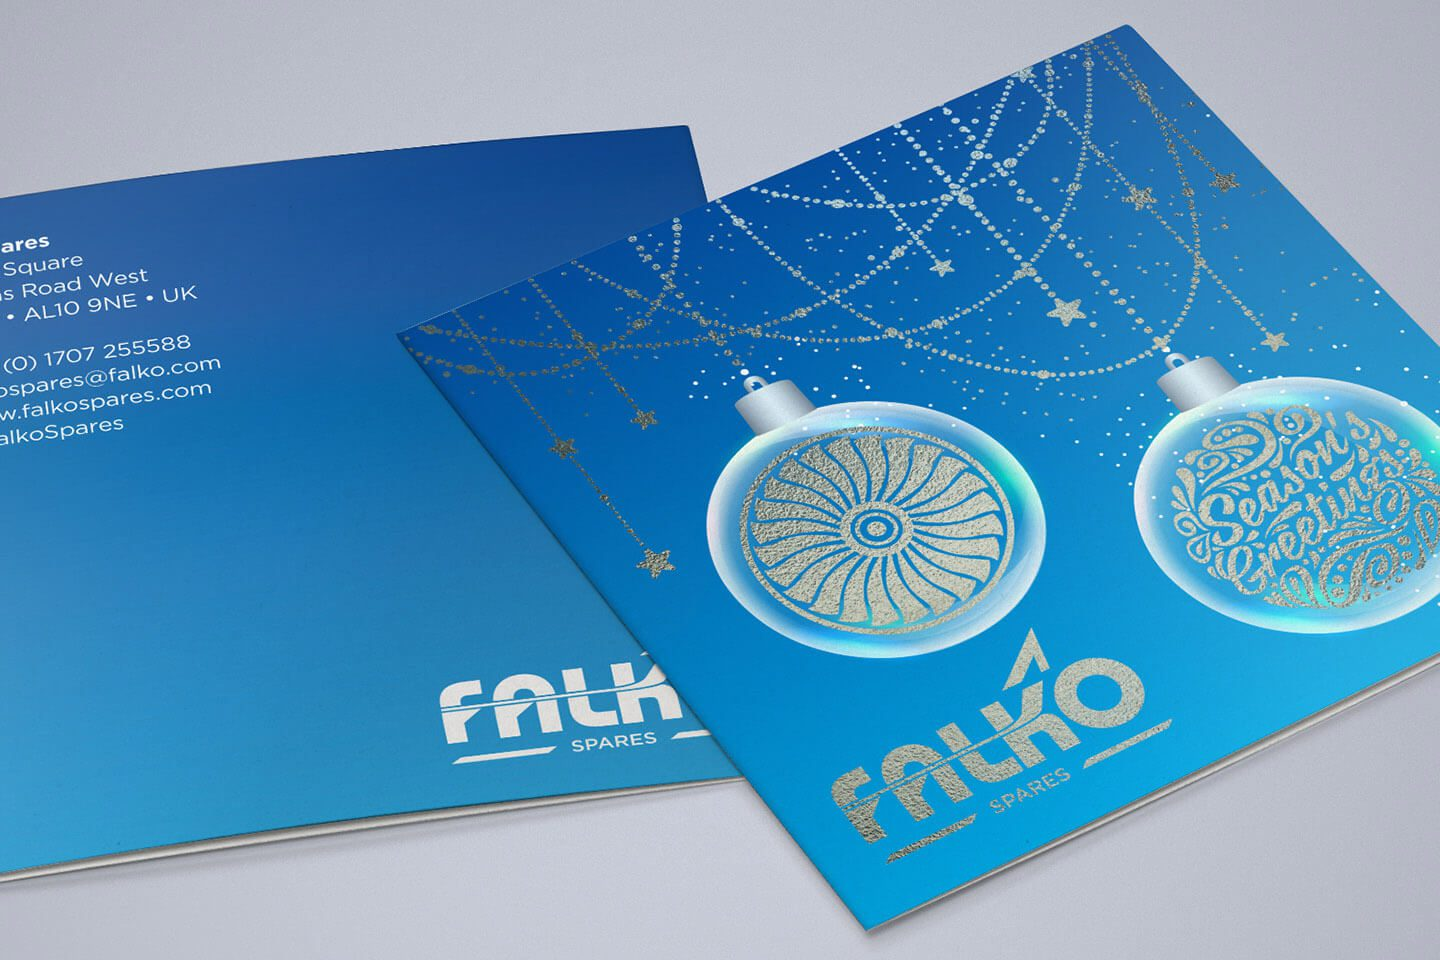 FALKO Case Study Annual Christmas card using white ink and silver foil visual